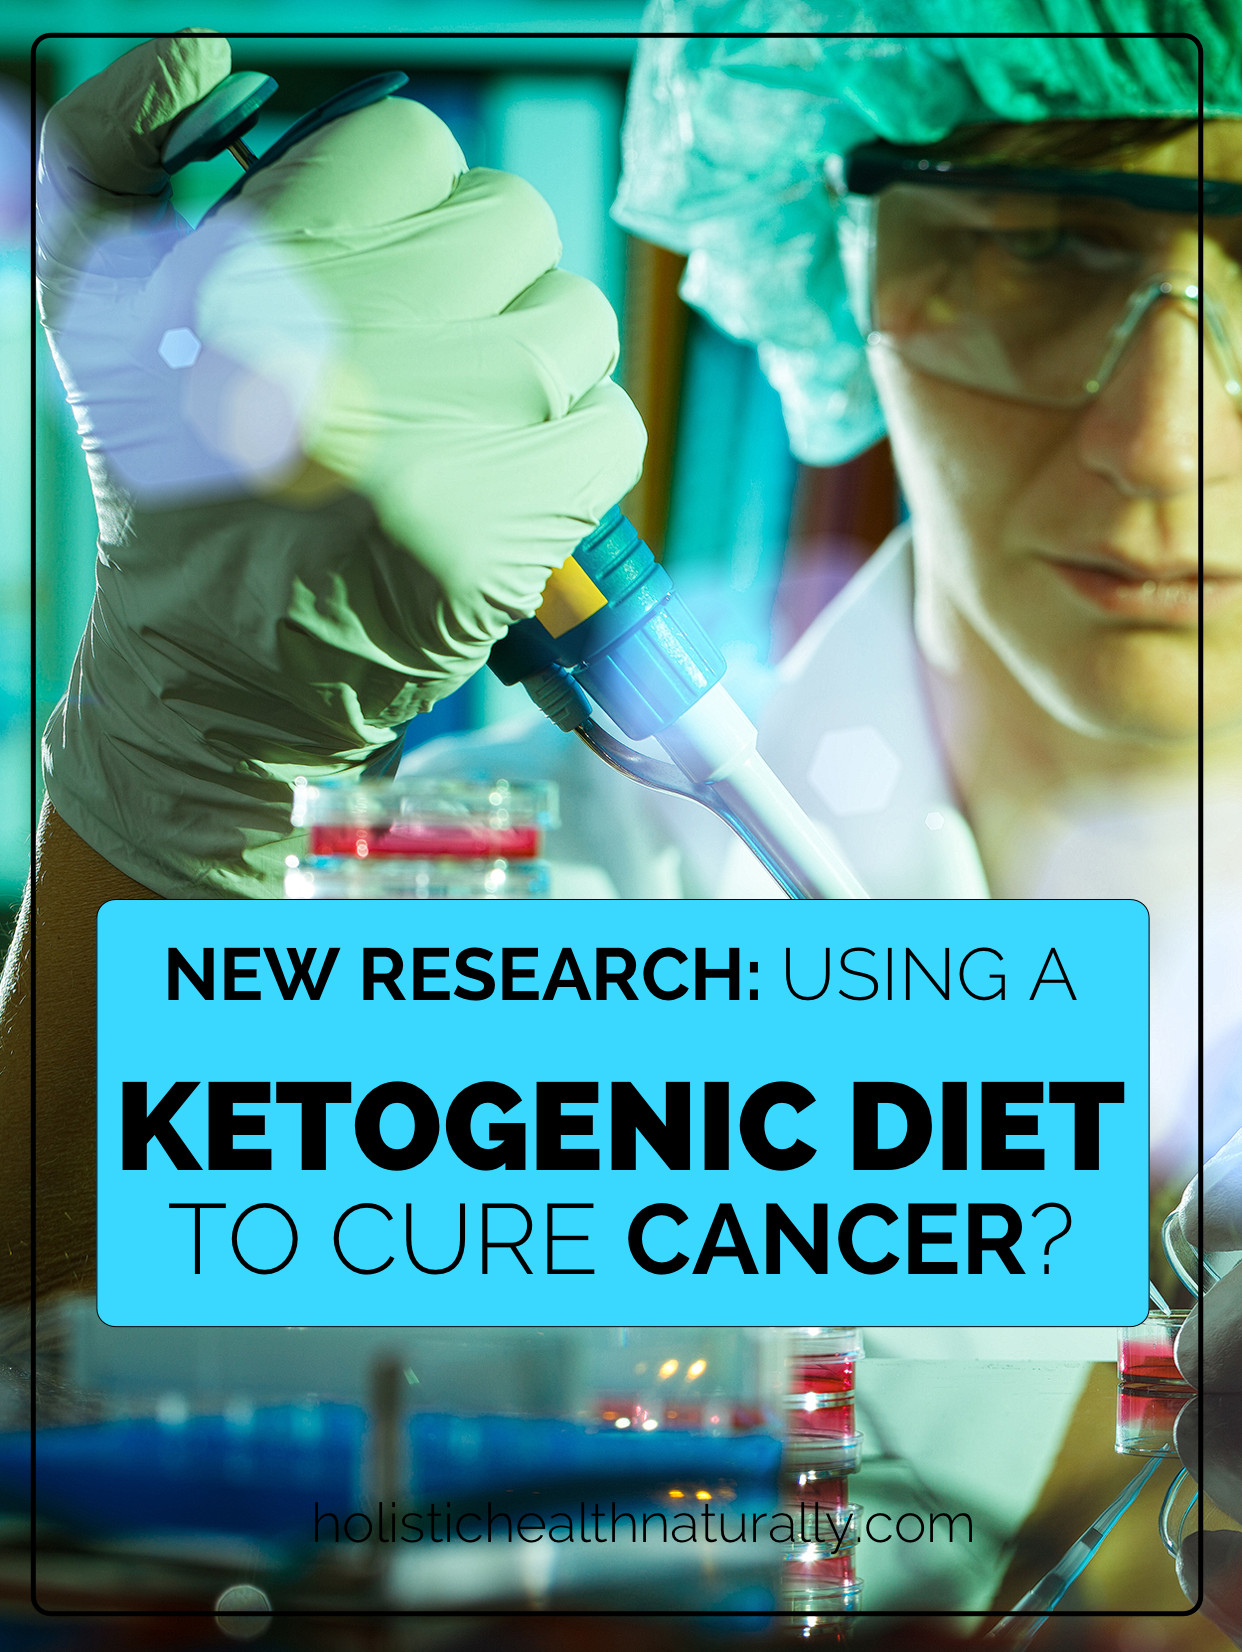 Keto Diet Cancer  New Research Using A Ketogenic Diet To Cure Cancer